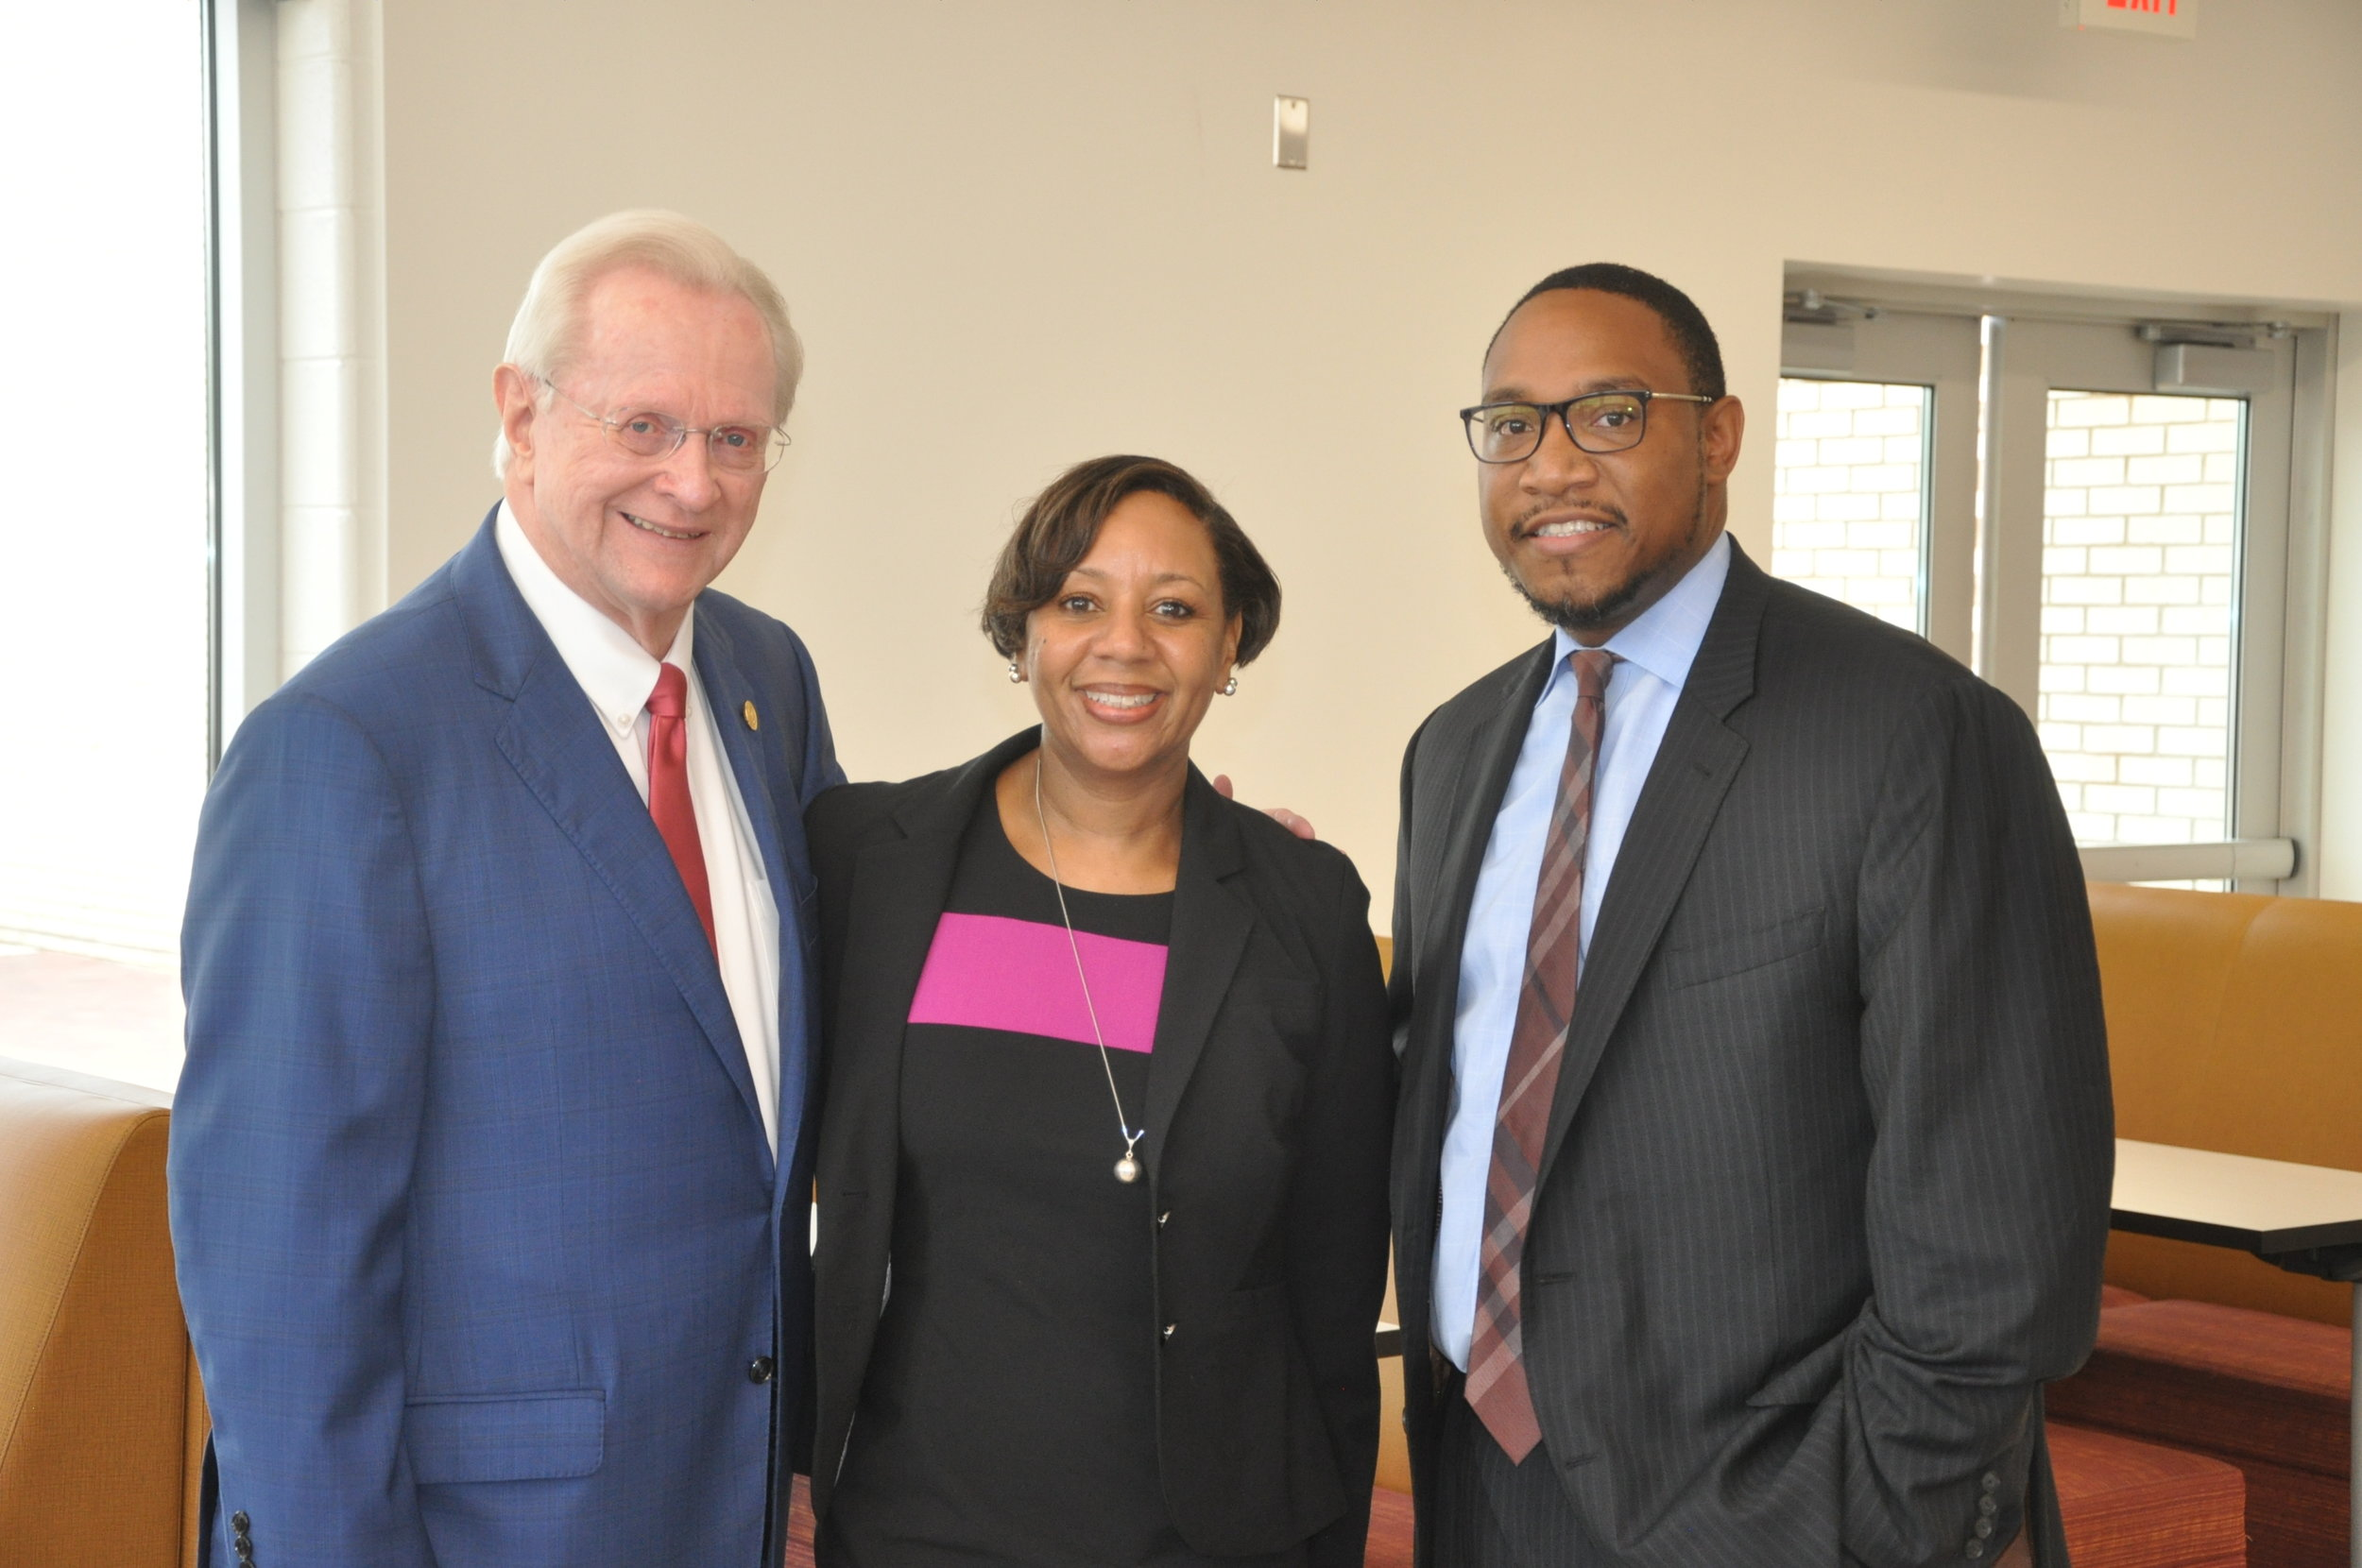 New leadership at Prince George's County Public Schools under Interim CEO Dr. Monica Goldson (center) with Greater Prince George's County Business Roundtable President & CEO Jim Estepp (left) and Prince George's County Public Schools Chief of Staff Christian Rhodes (right).